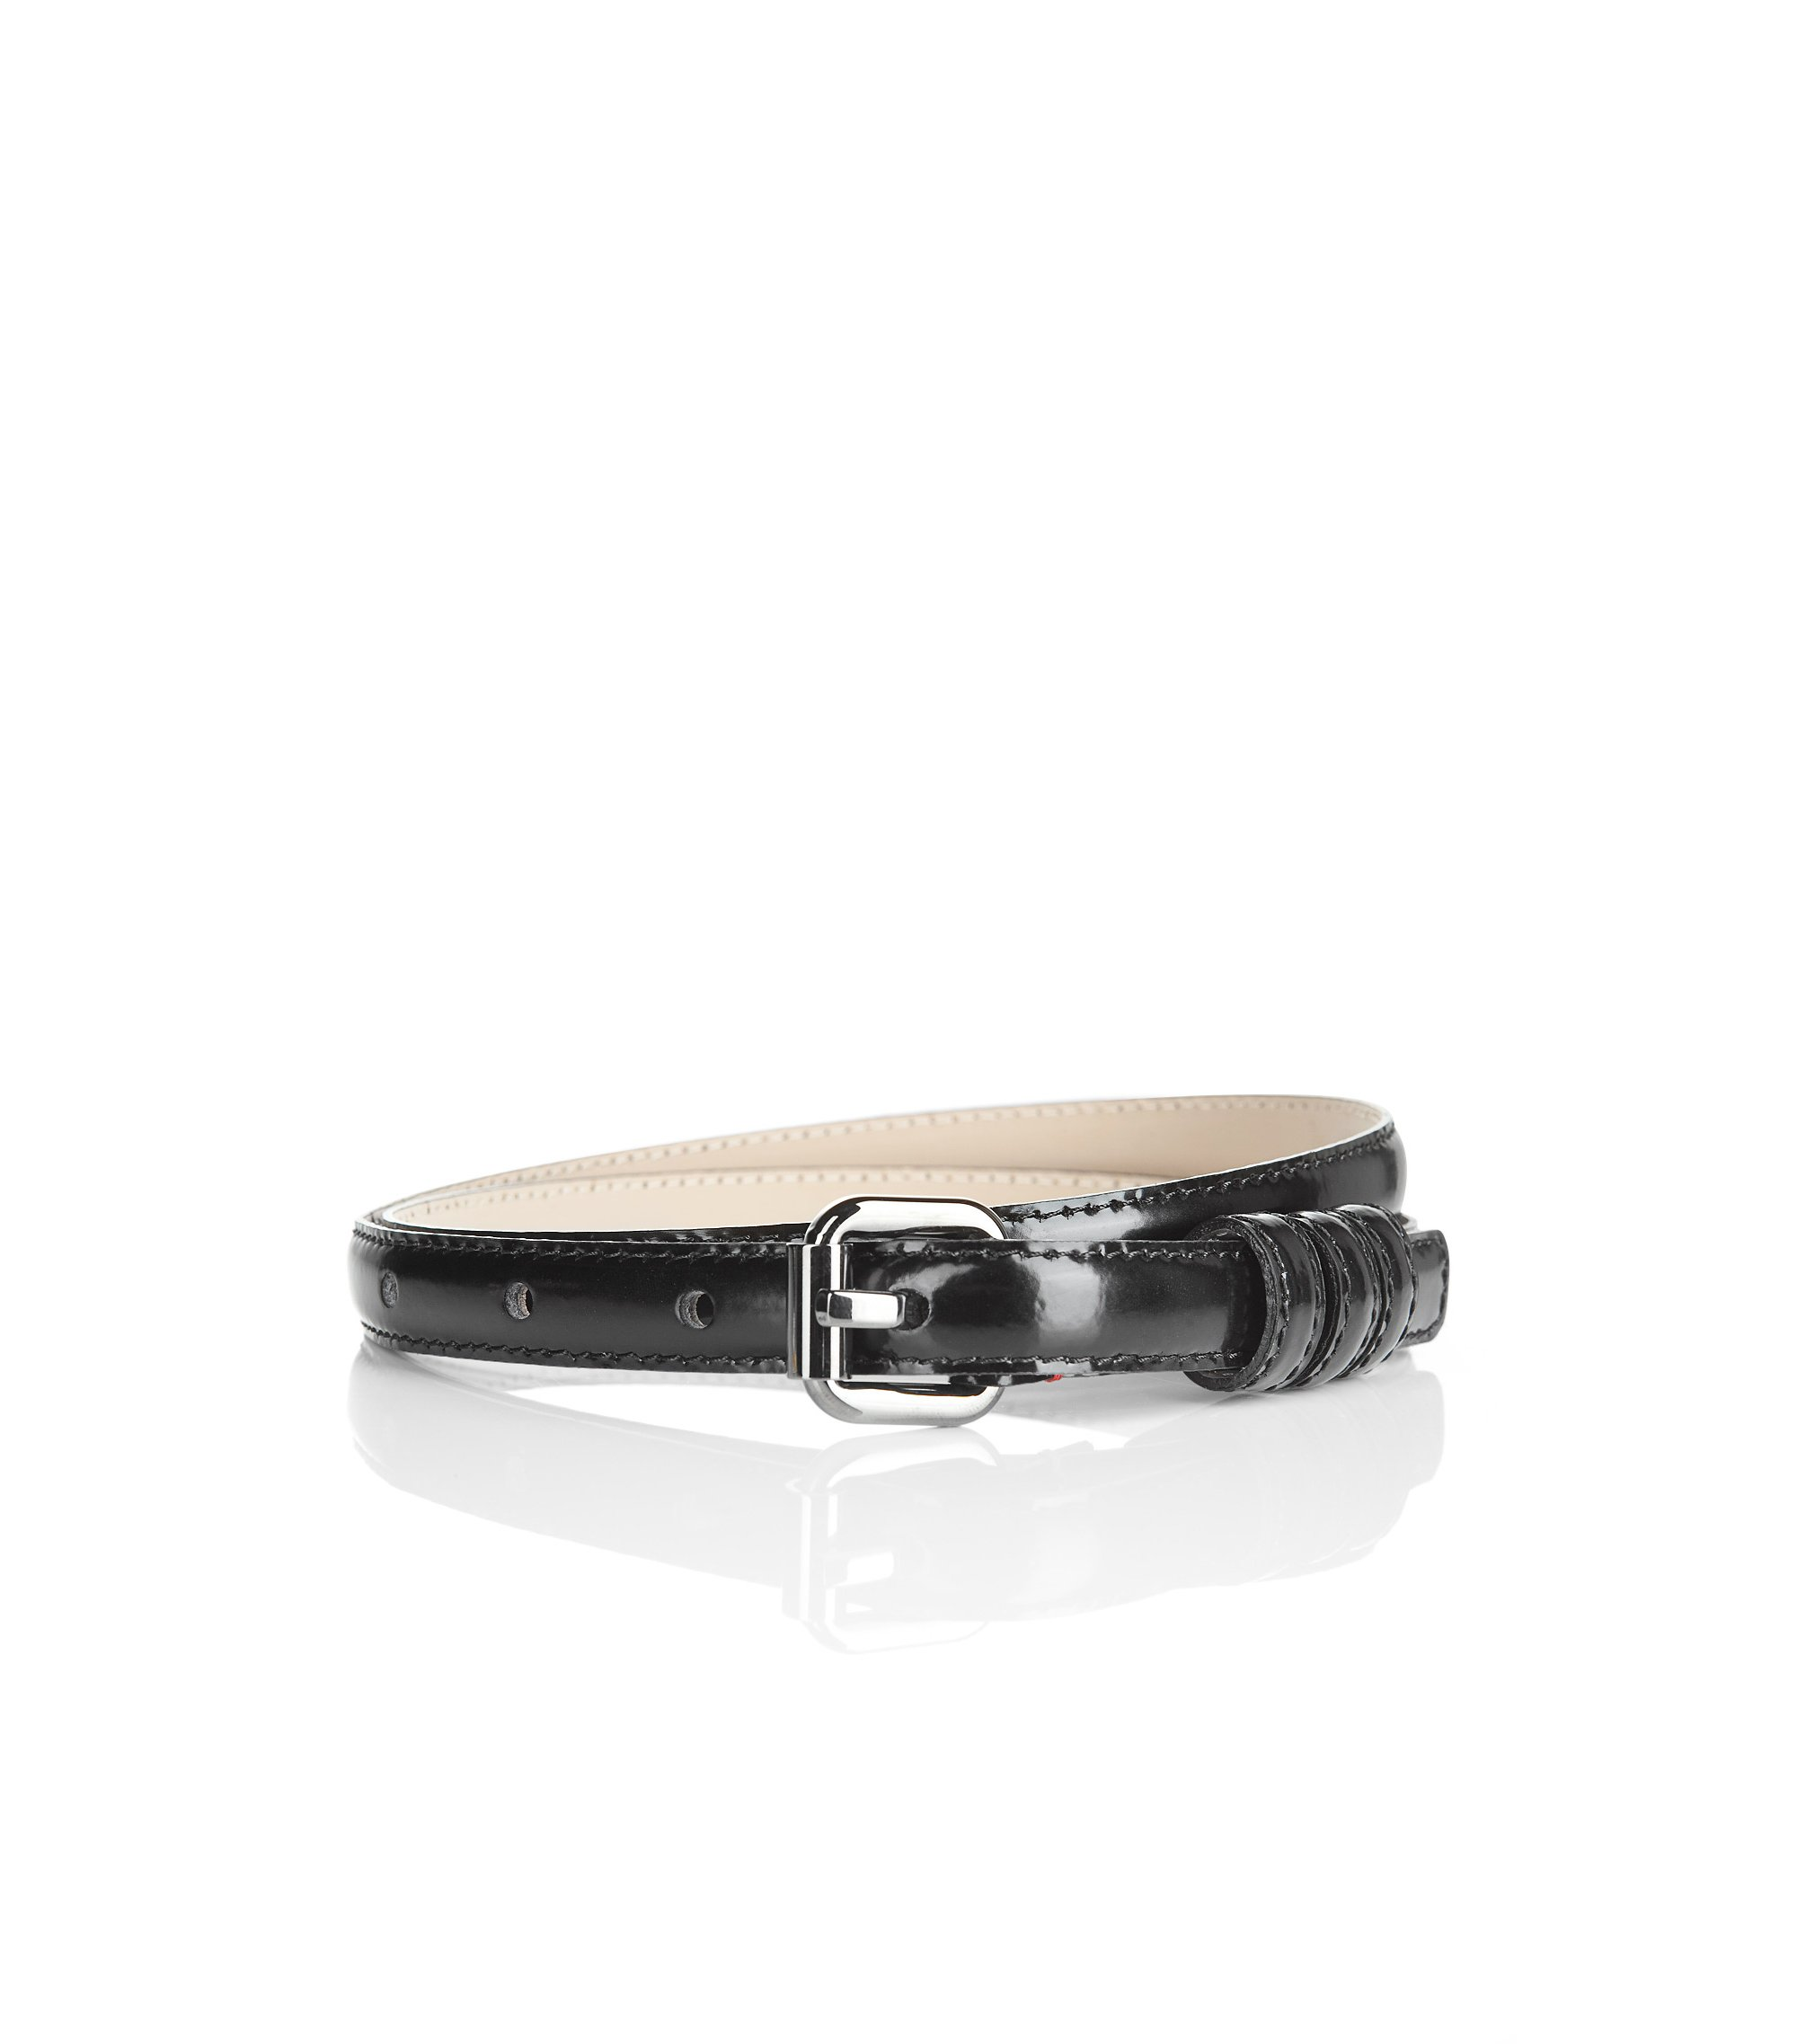 Narrow patent leather belt 'Armidia-A', Black